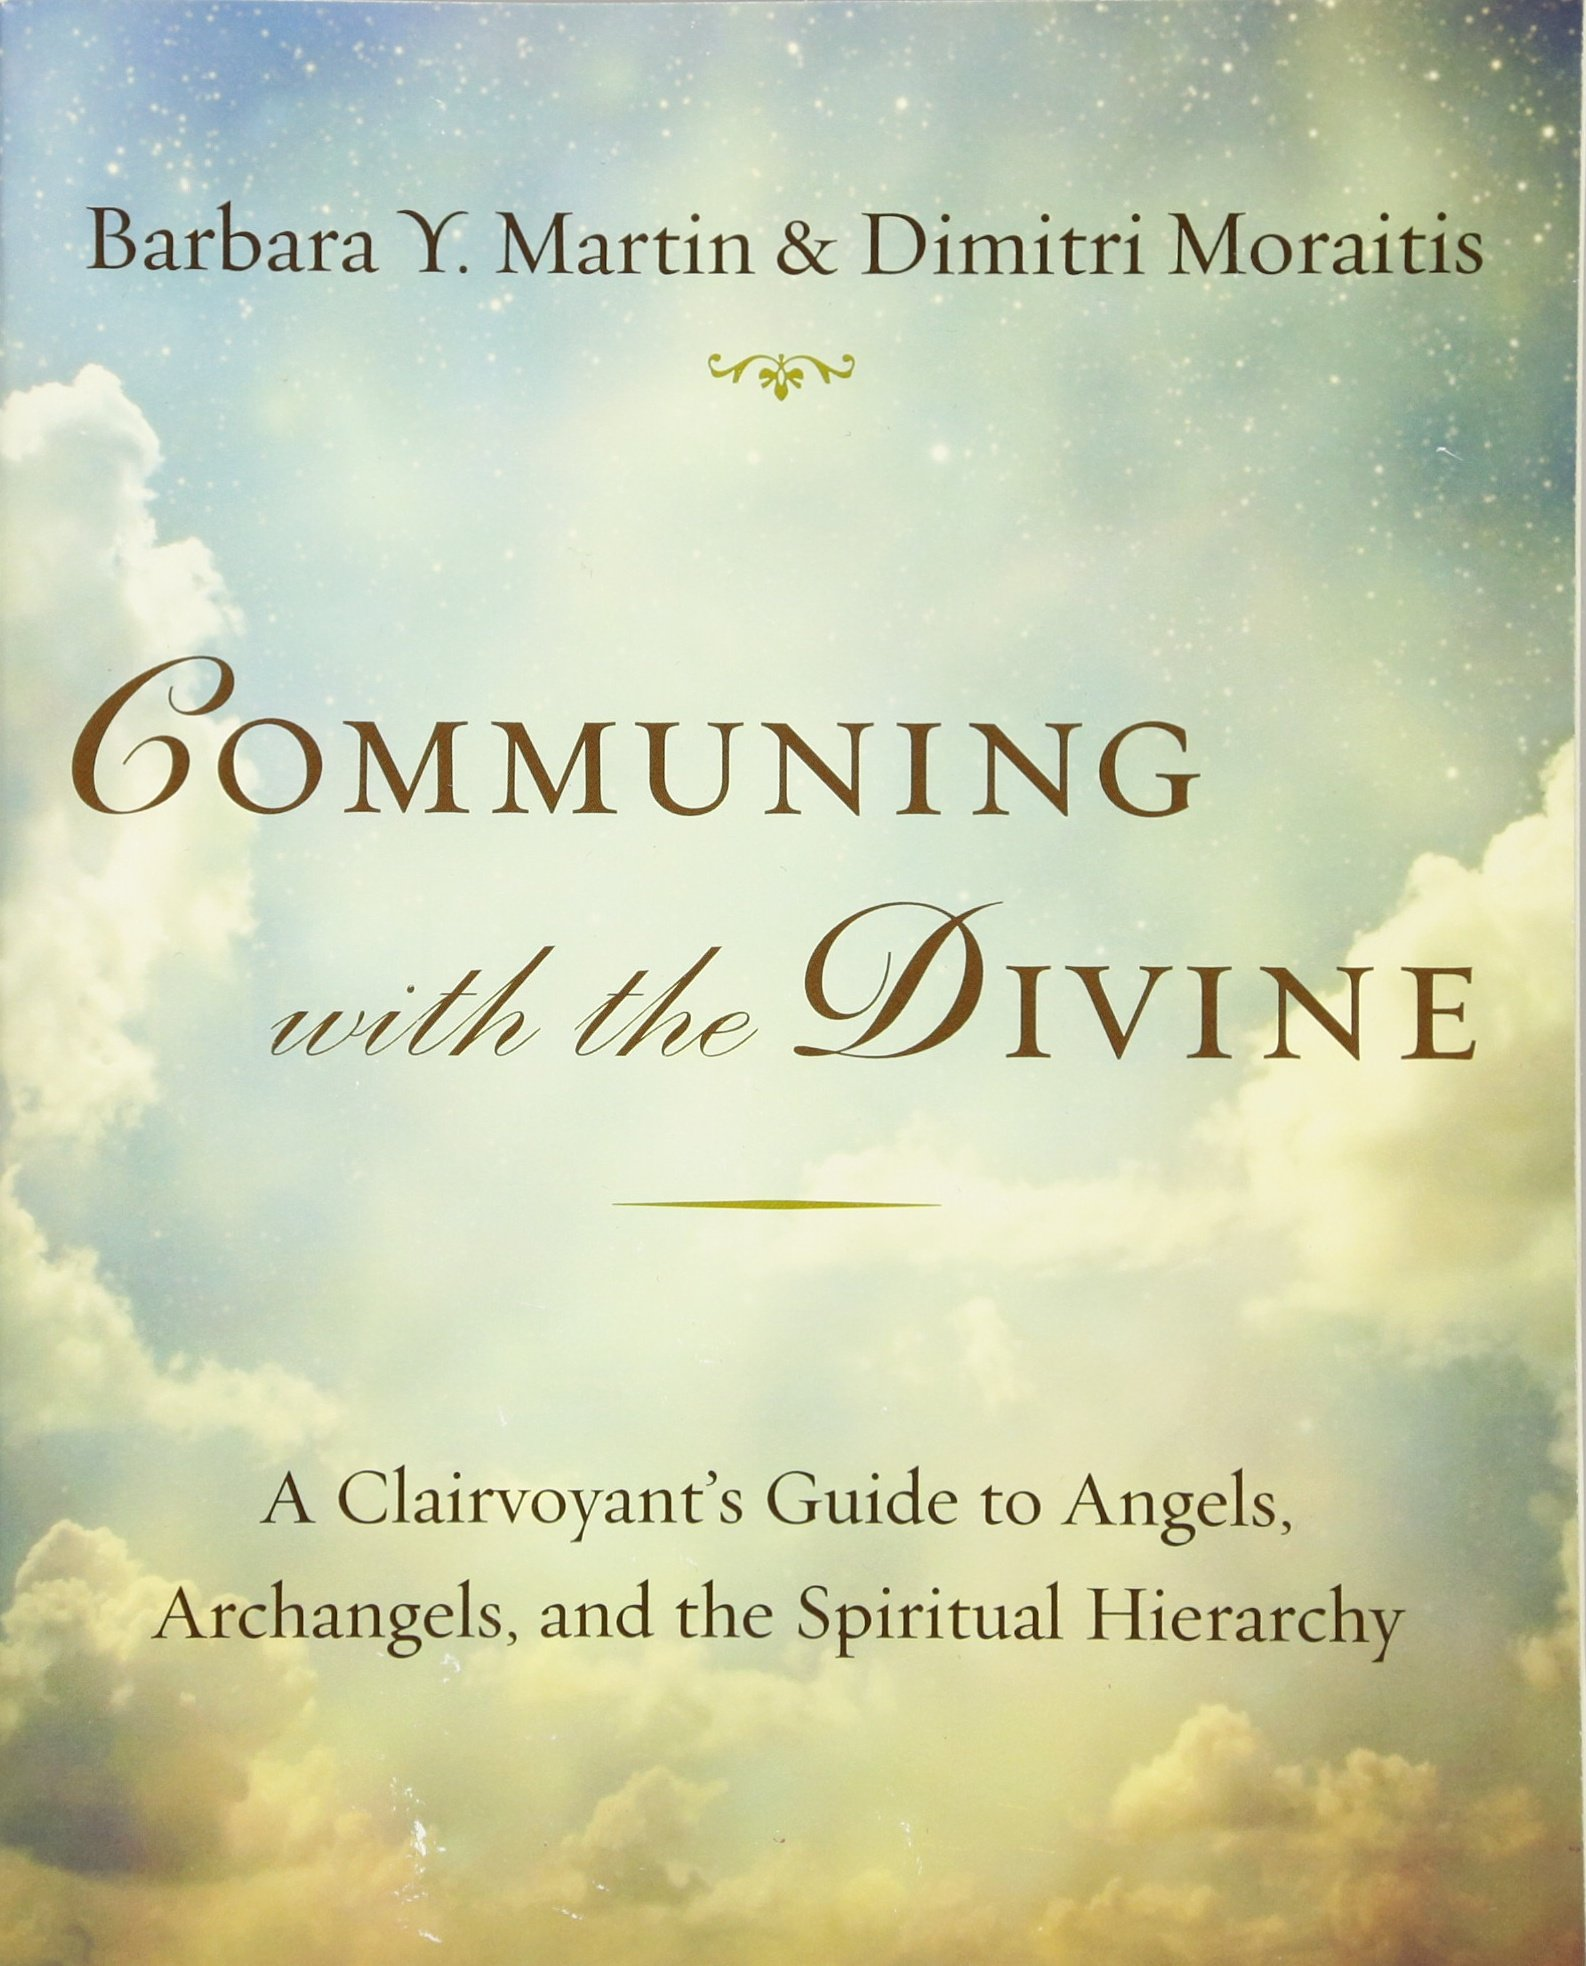 Communing With The Divine: A Clairvoyant's Guide To Angels, Archangels, And  The Spiritual Hierarchy: Barbara Y Martin, Dimitri Moraitis:  9780399167744: